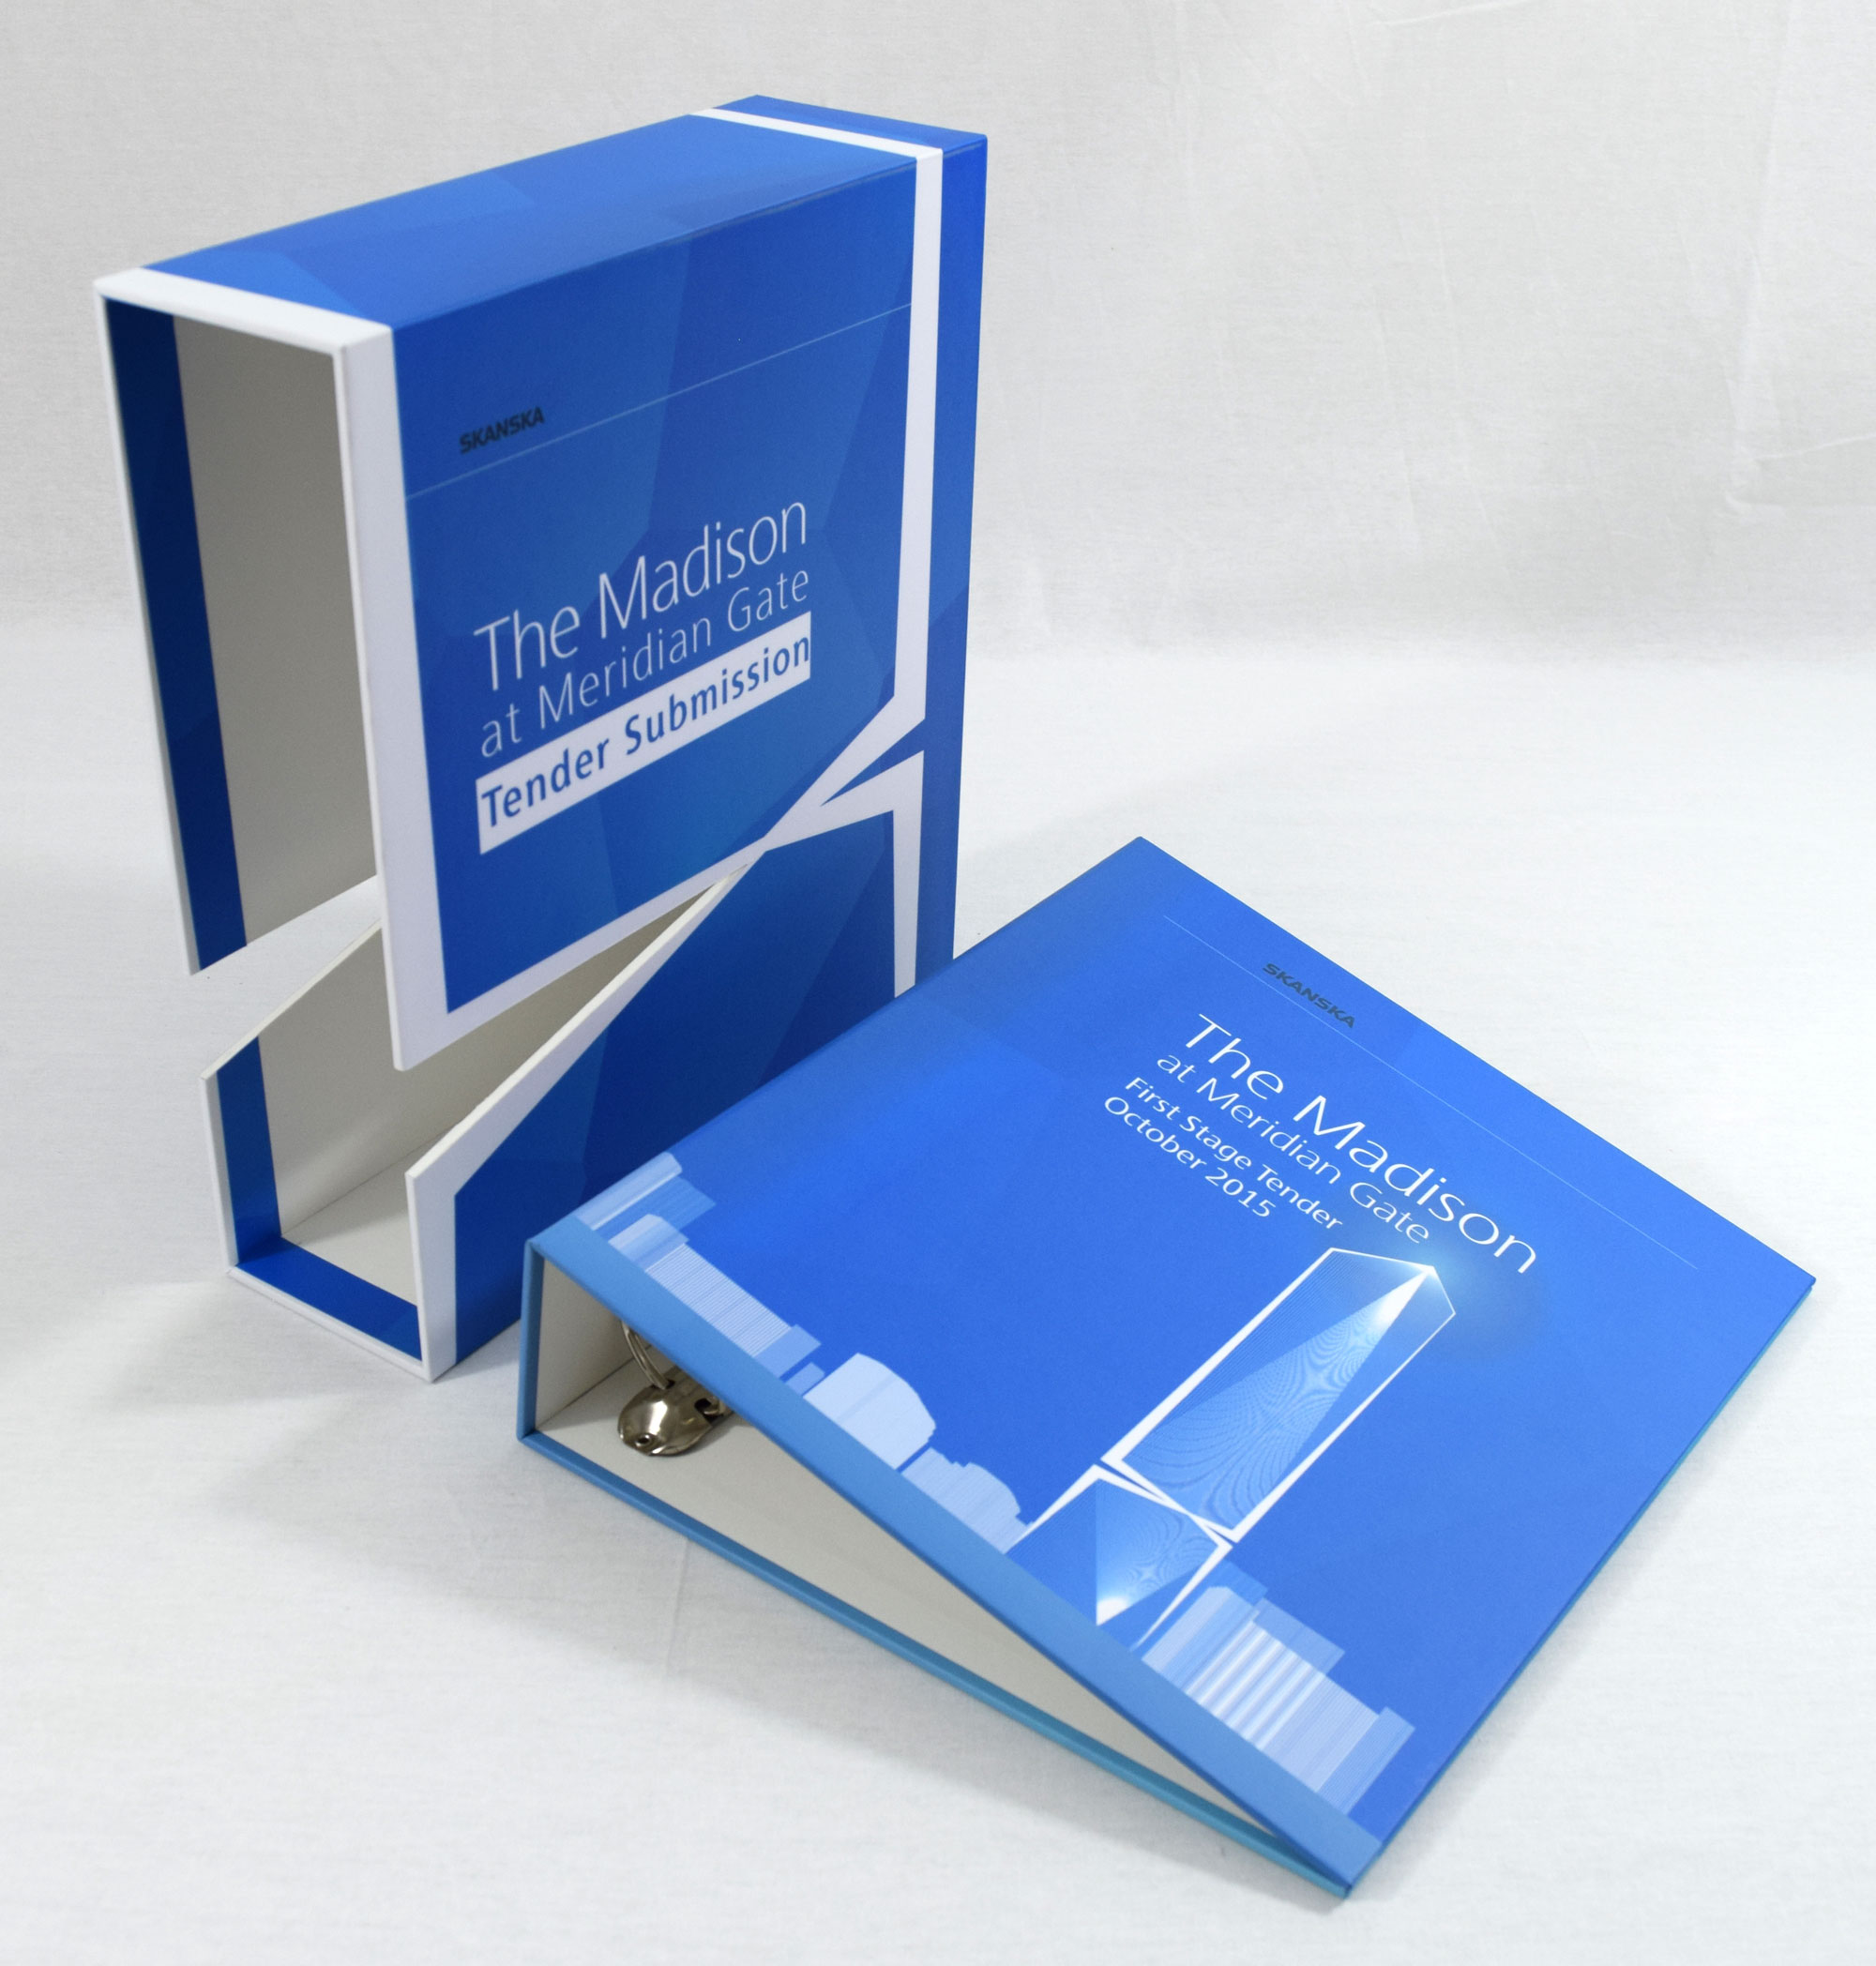 Tender Submission Box and Ring Binder